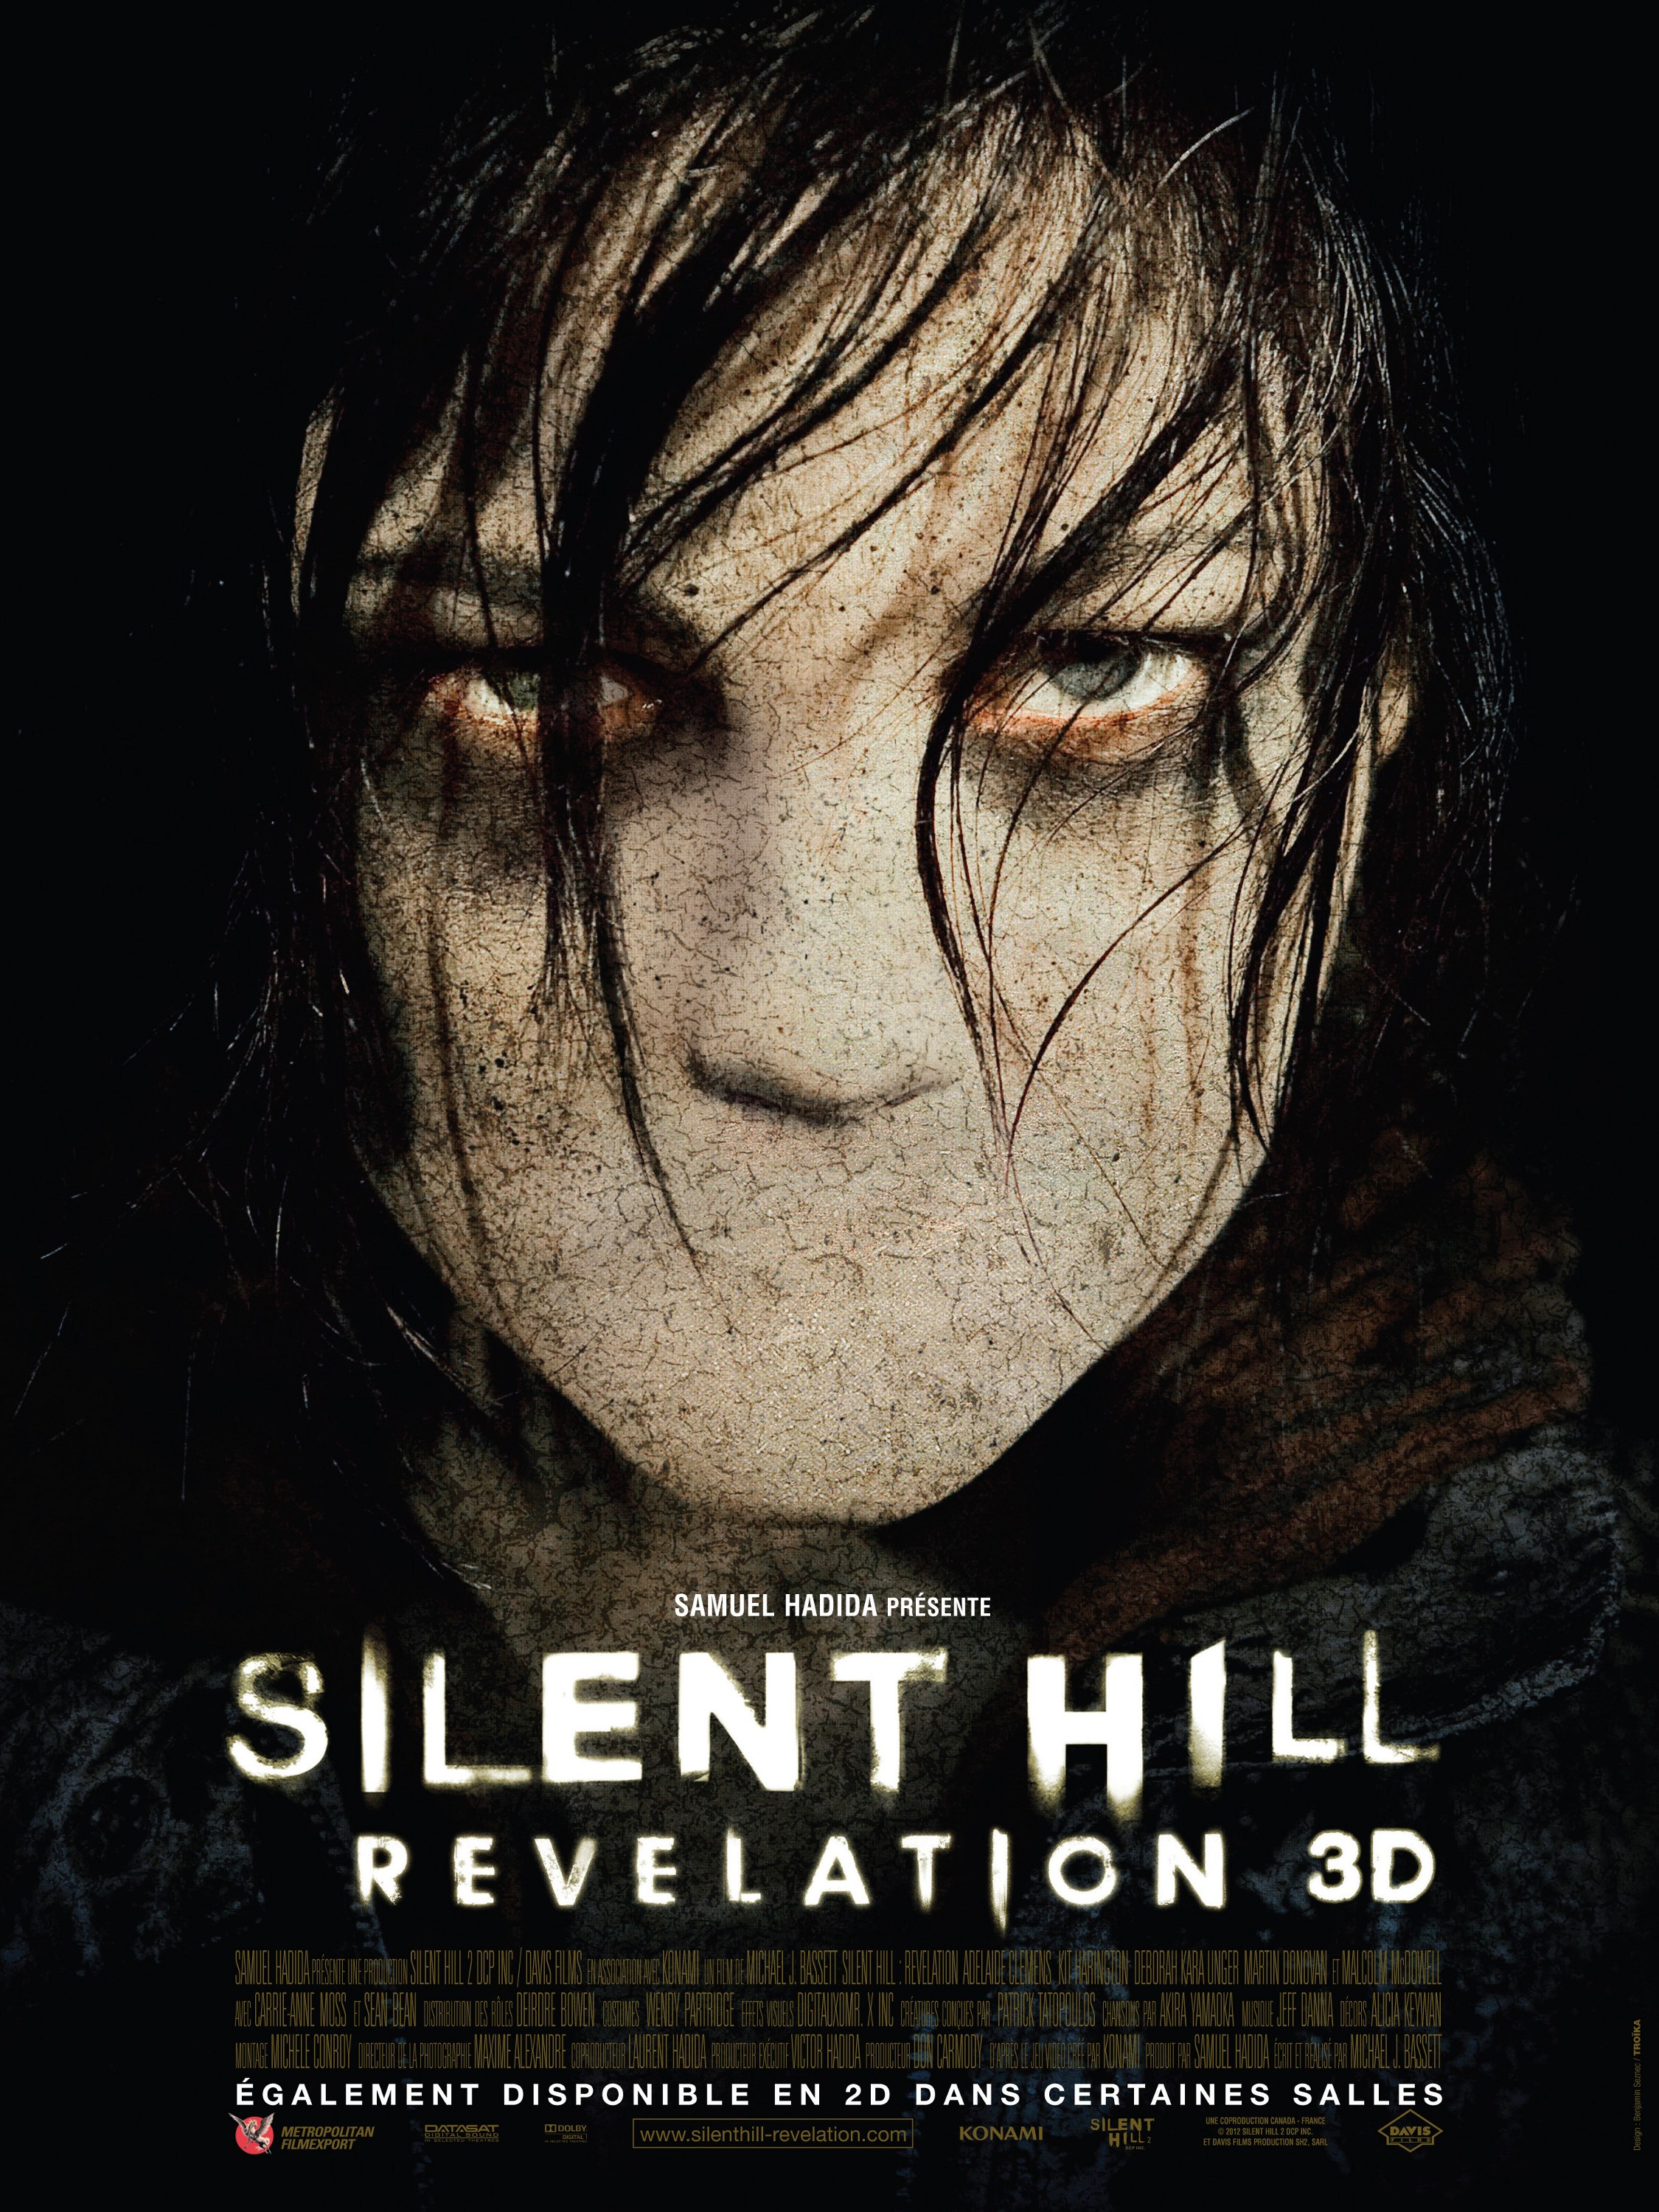 Silent Hill: Revelation 3D Review | Moar Powah!